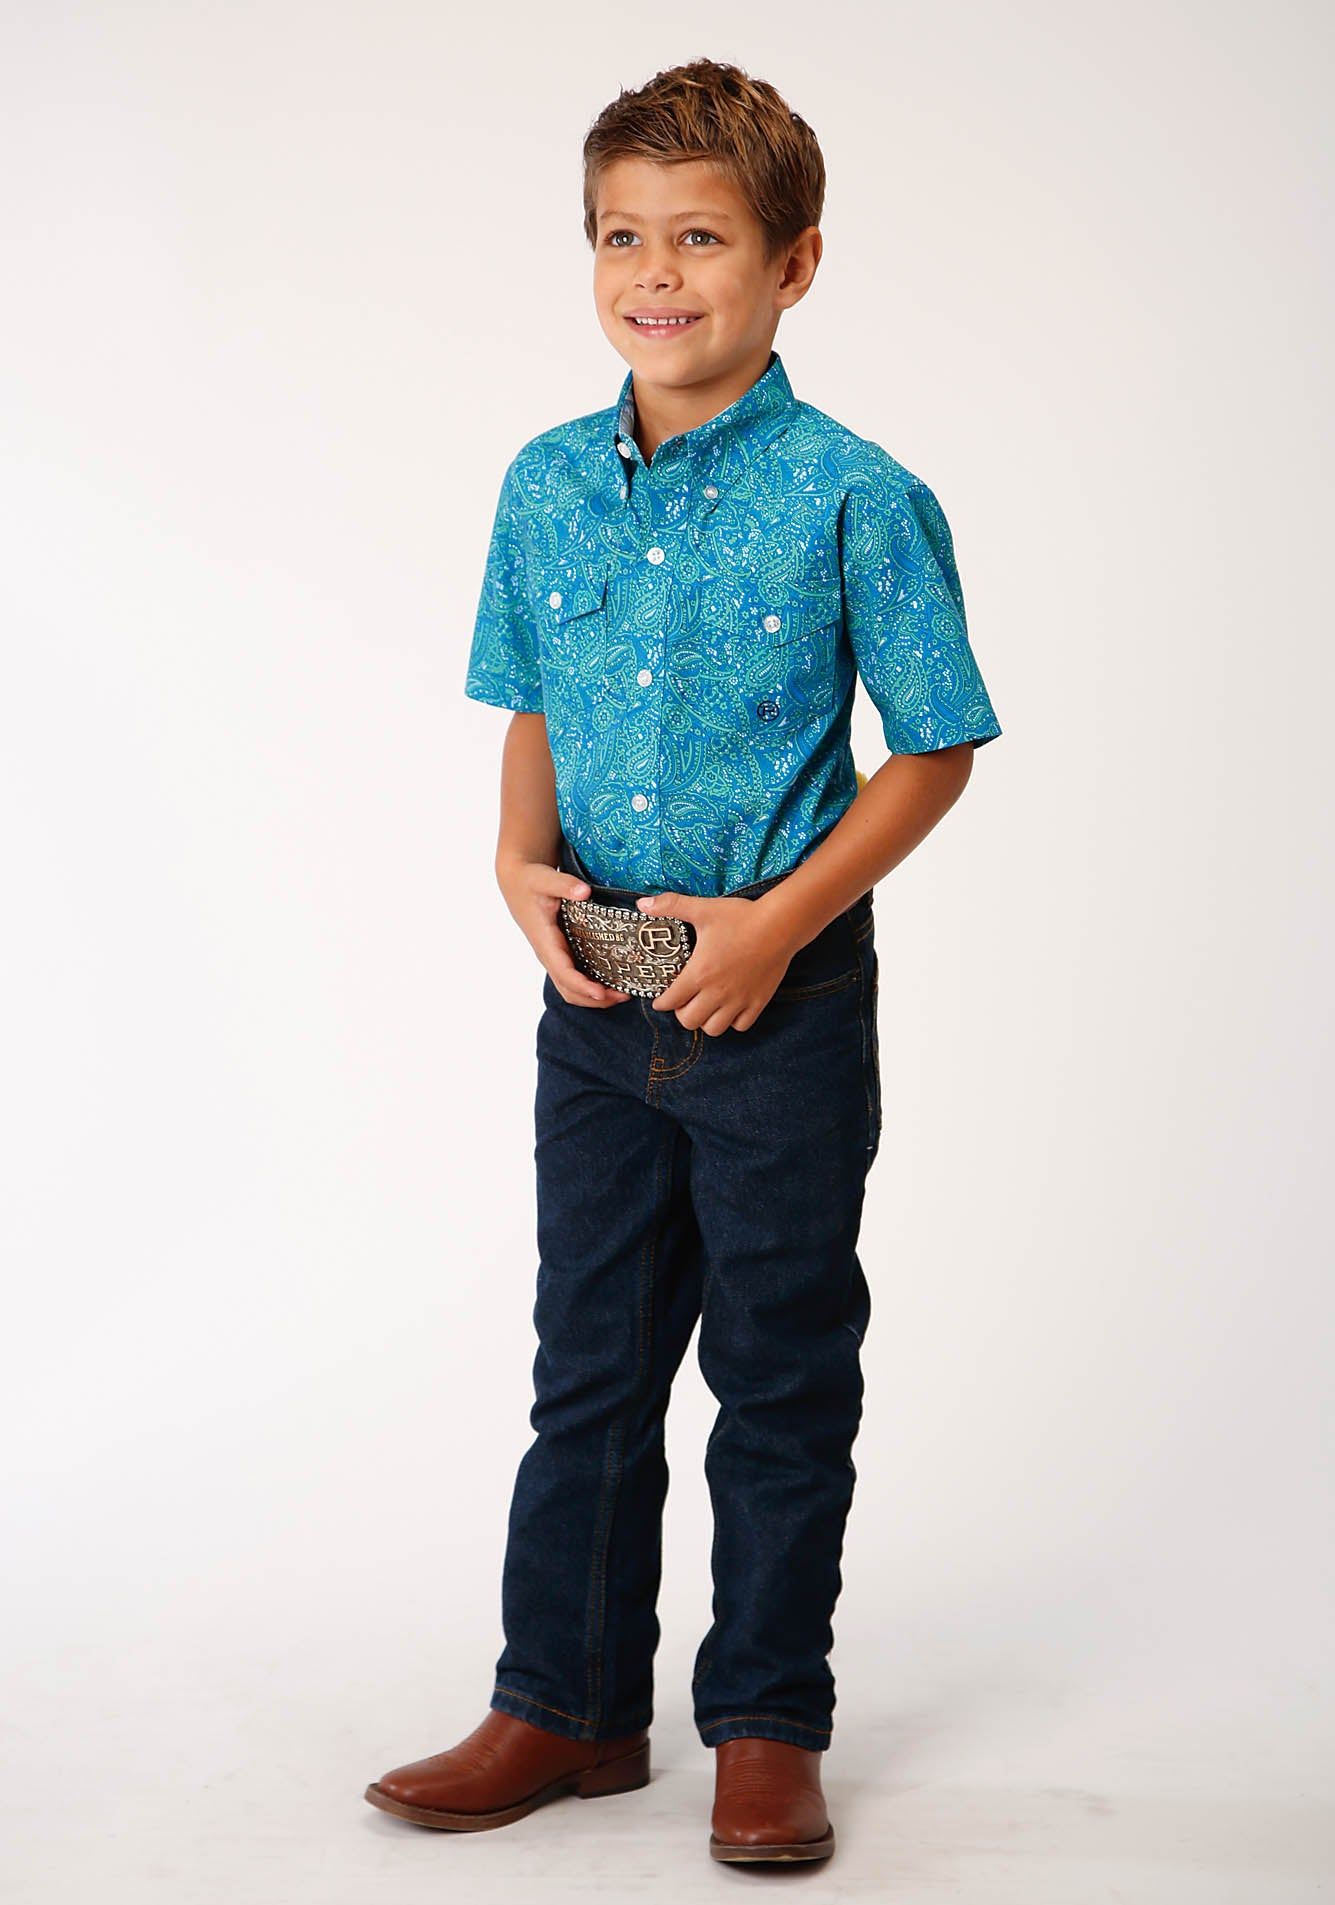 ROPER BOYS BLUE 00152 MEADOW PAISLEY BOY'S AMARILLO COLLECTION - BLUE RIDGE SHORT SLEEVE